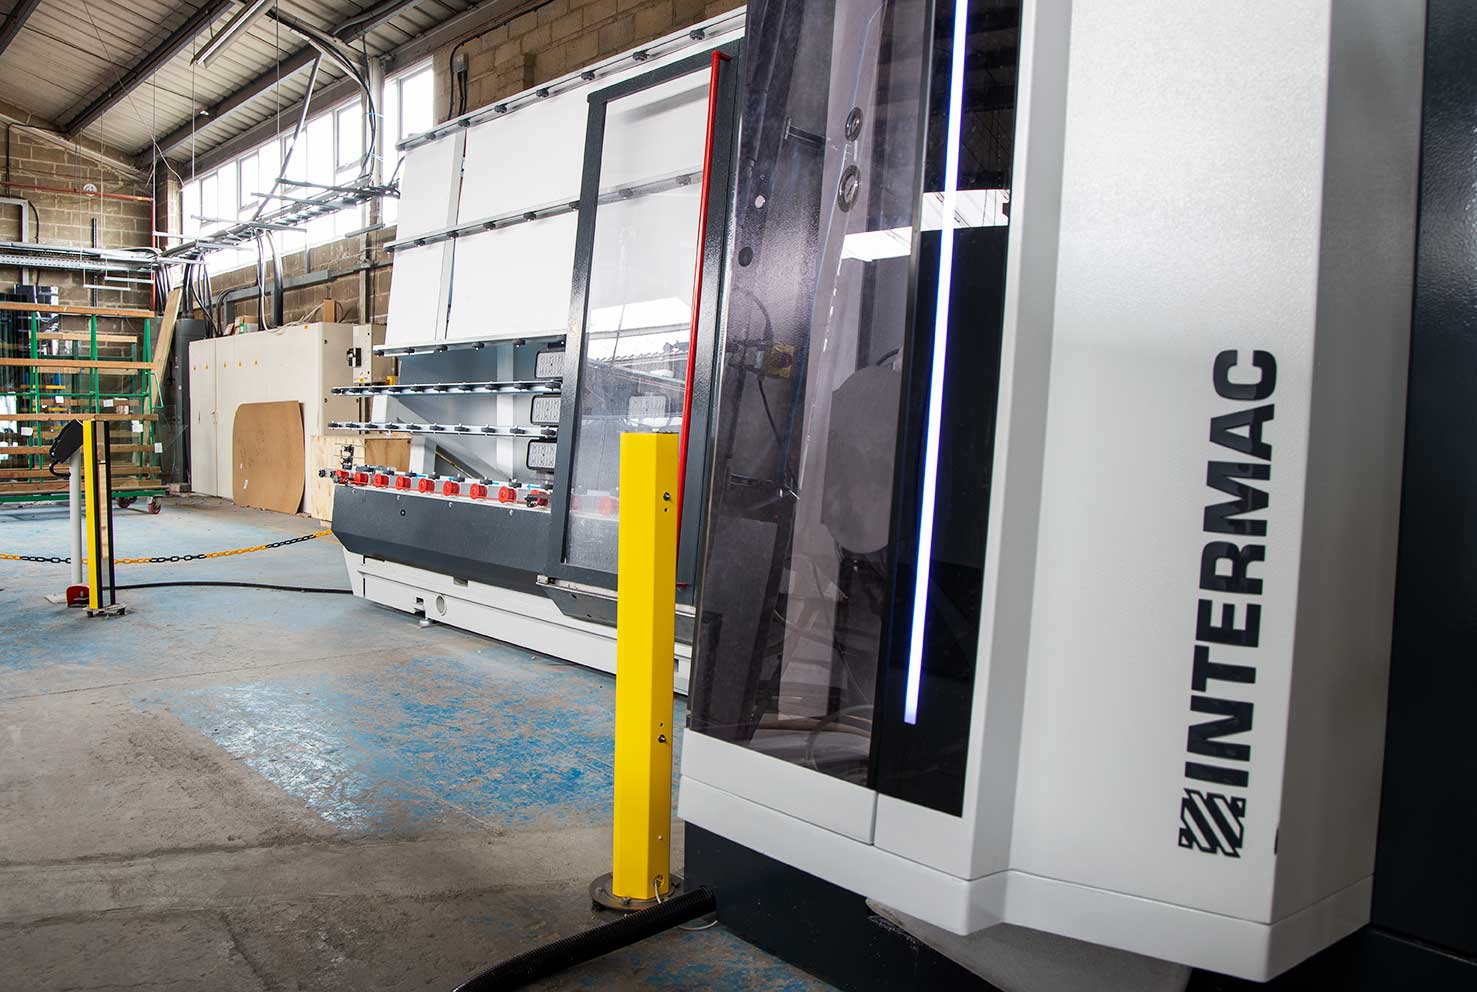 New Intermac Vertmix CNC glass processing machine